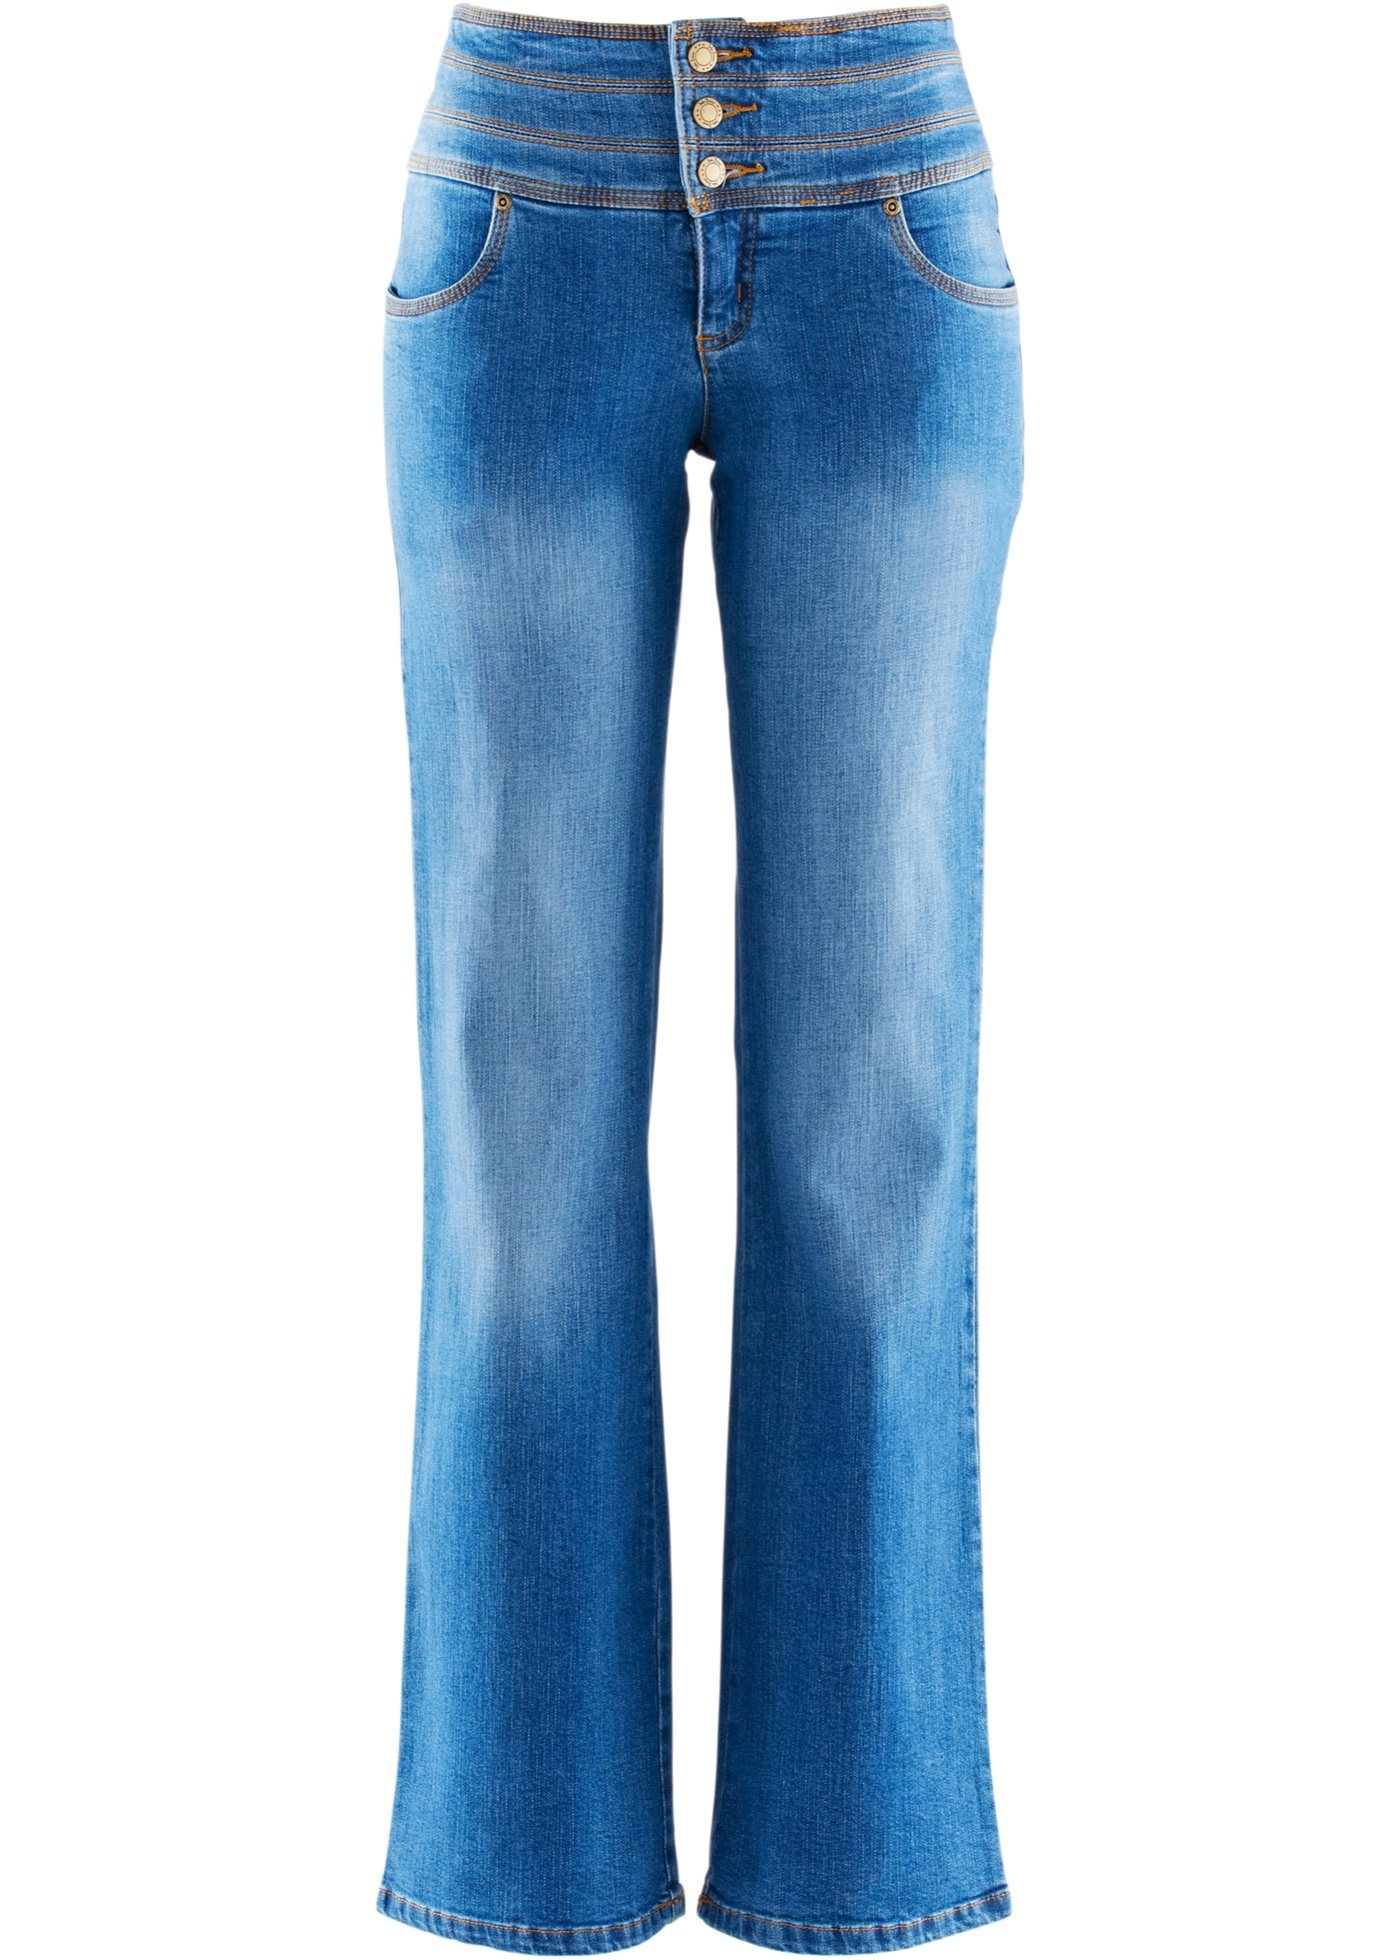 Jean shaping stretch ventre plat bootcut, T.C.